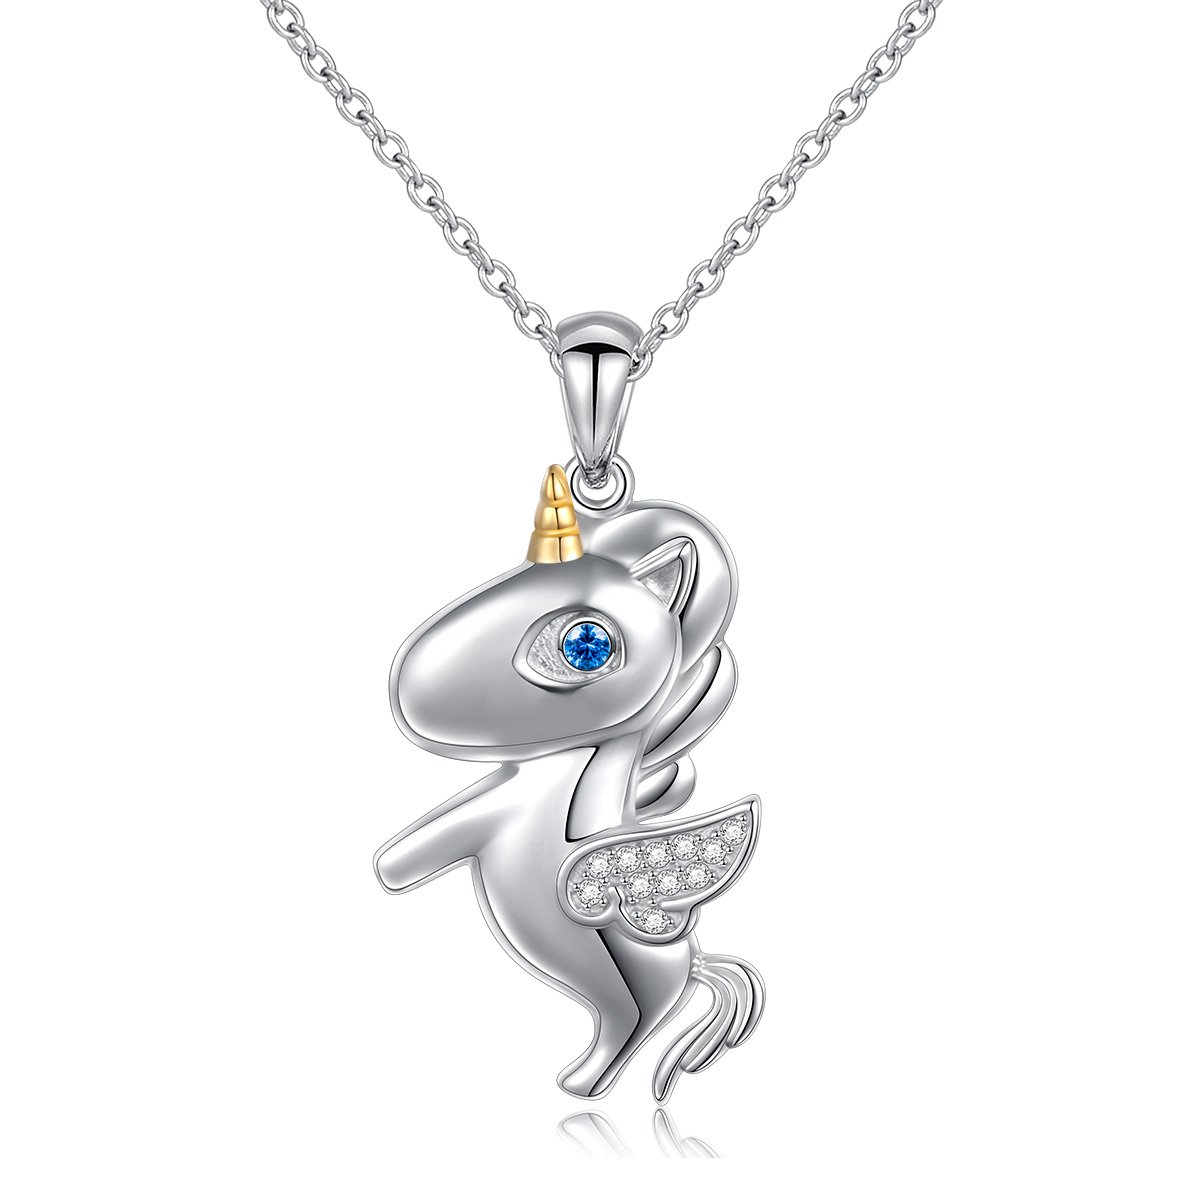 LINLIN FINE JEWELRY 925 Sterling Silver Cubic Zirconia Flying Unicorn Pendant Necklace for Women Girl, 18 inch (Circle)